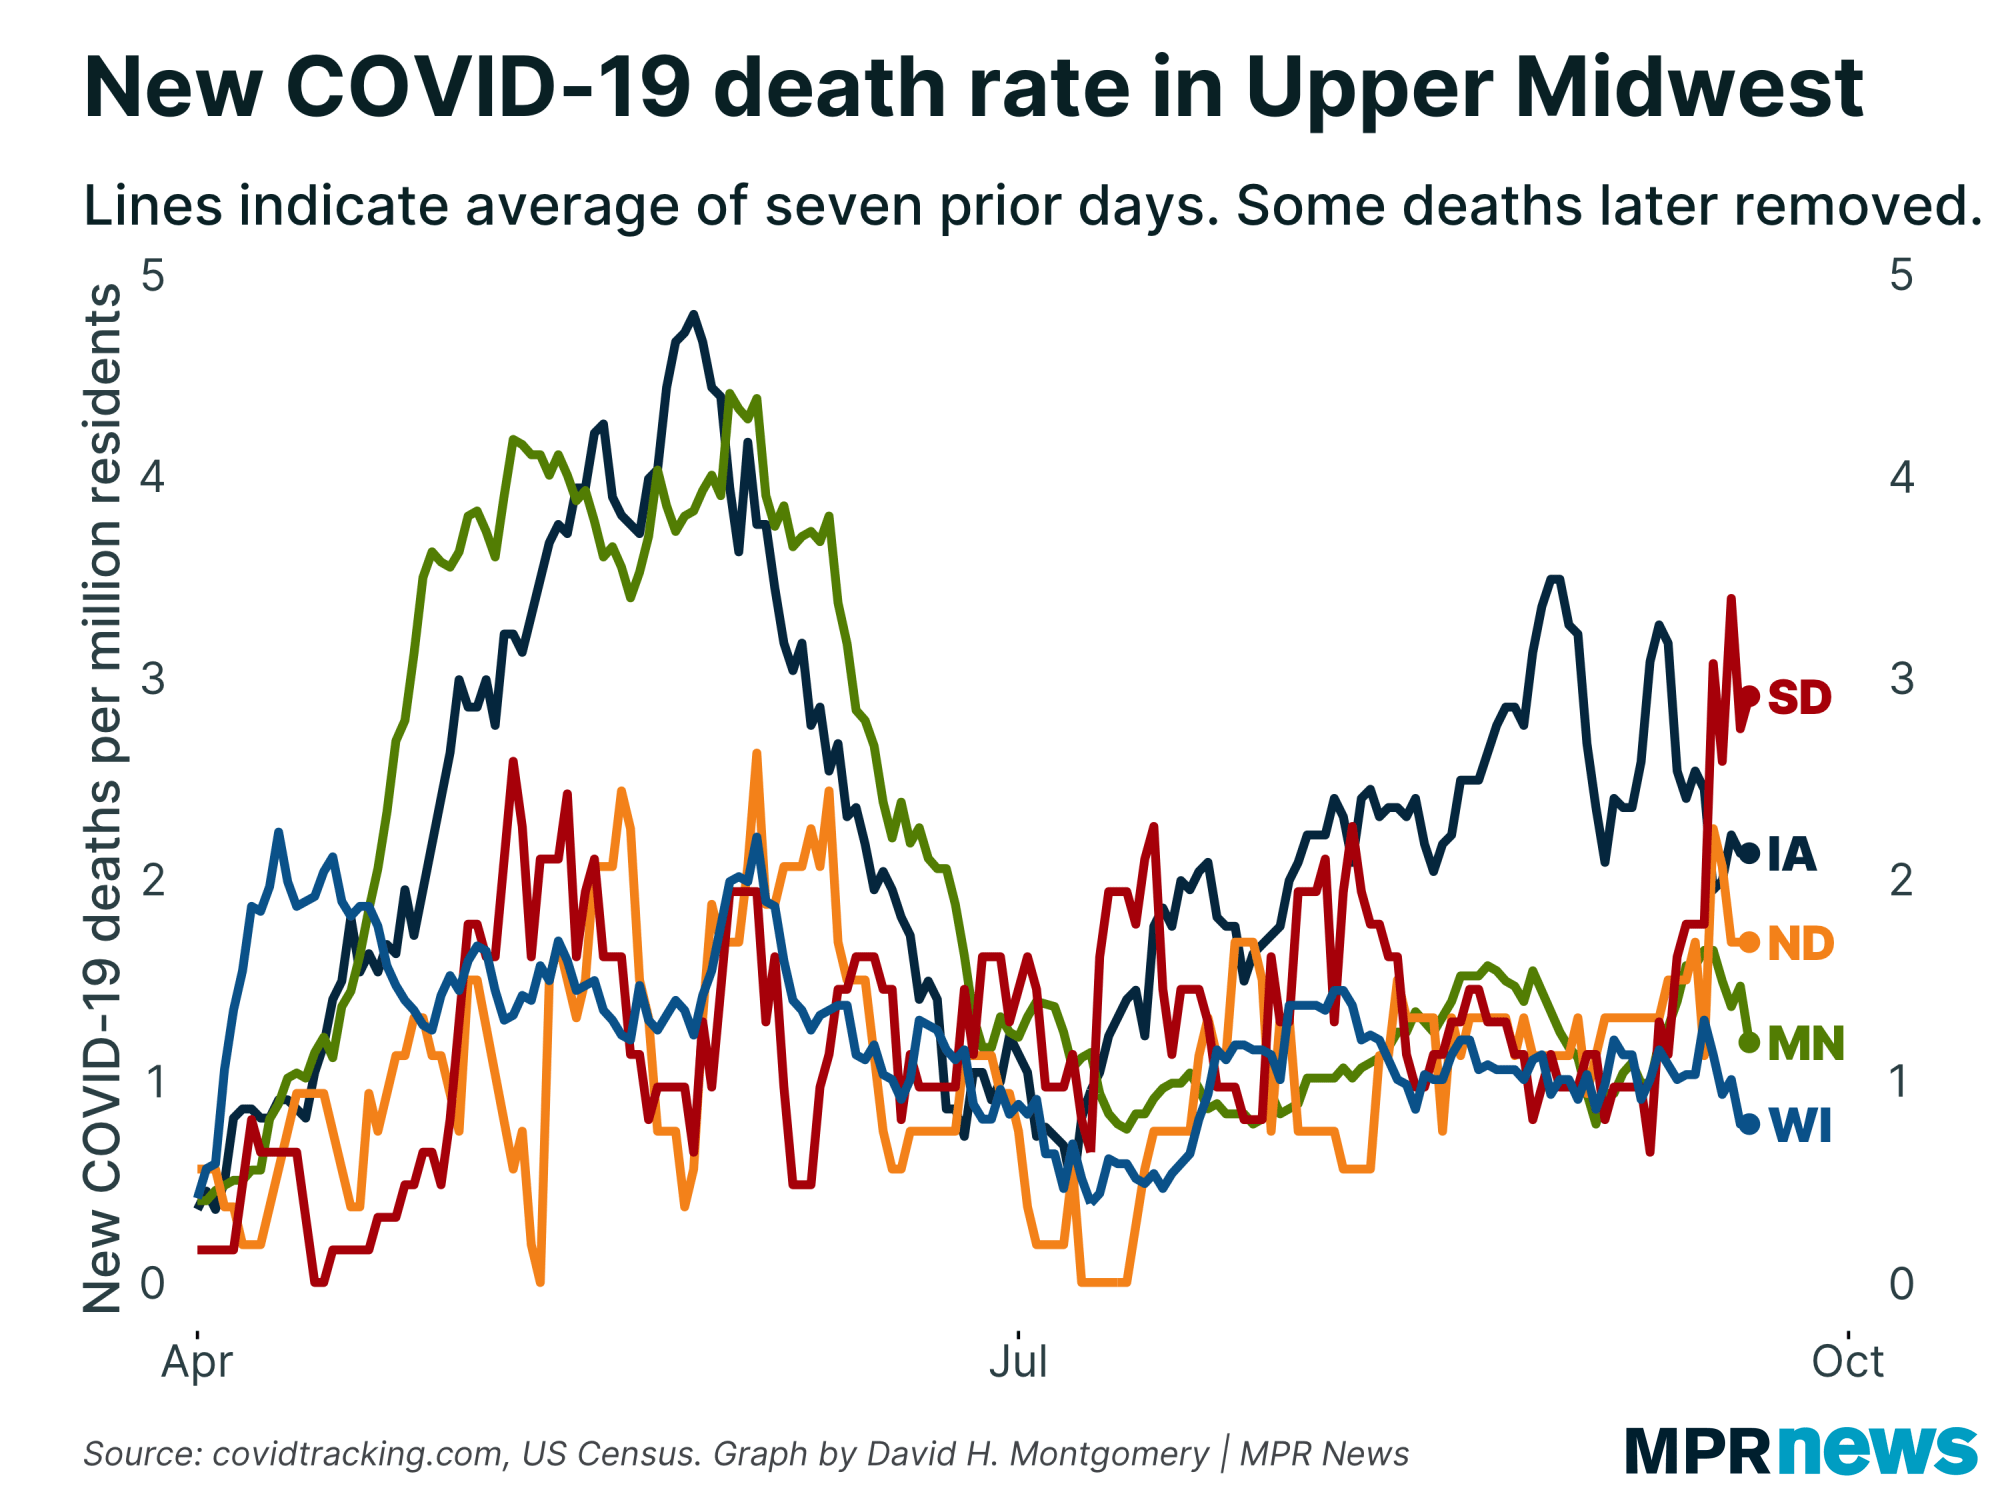 New COVID-19 deaths per capita in the Upper Midwest